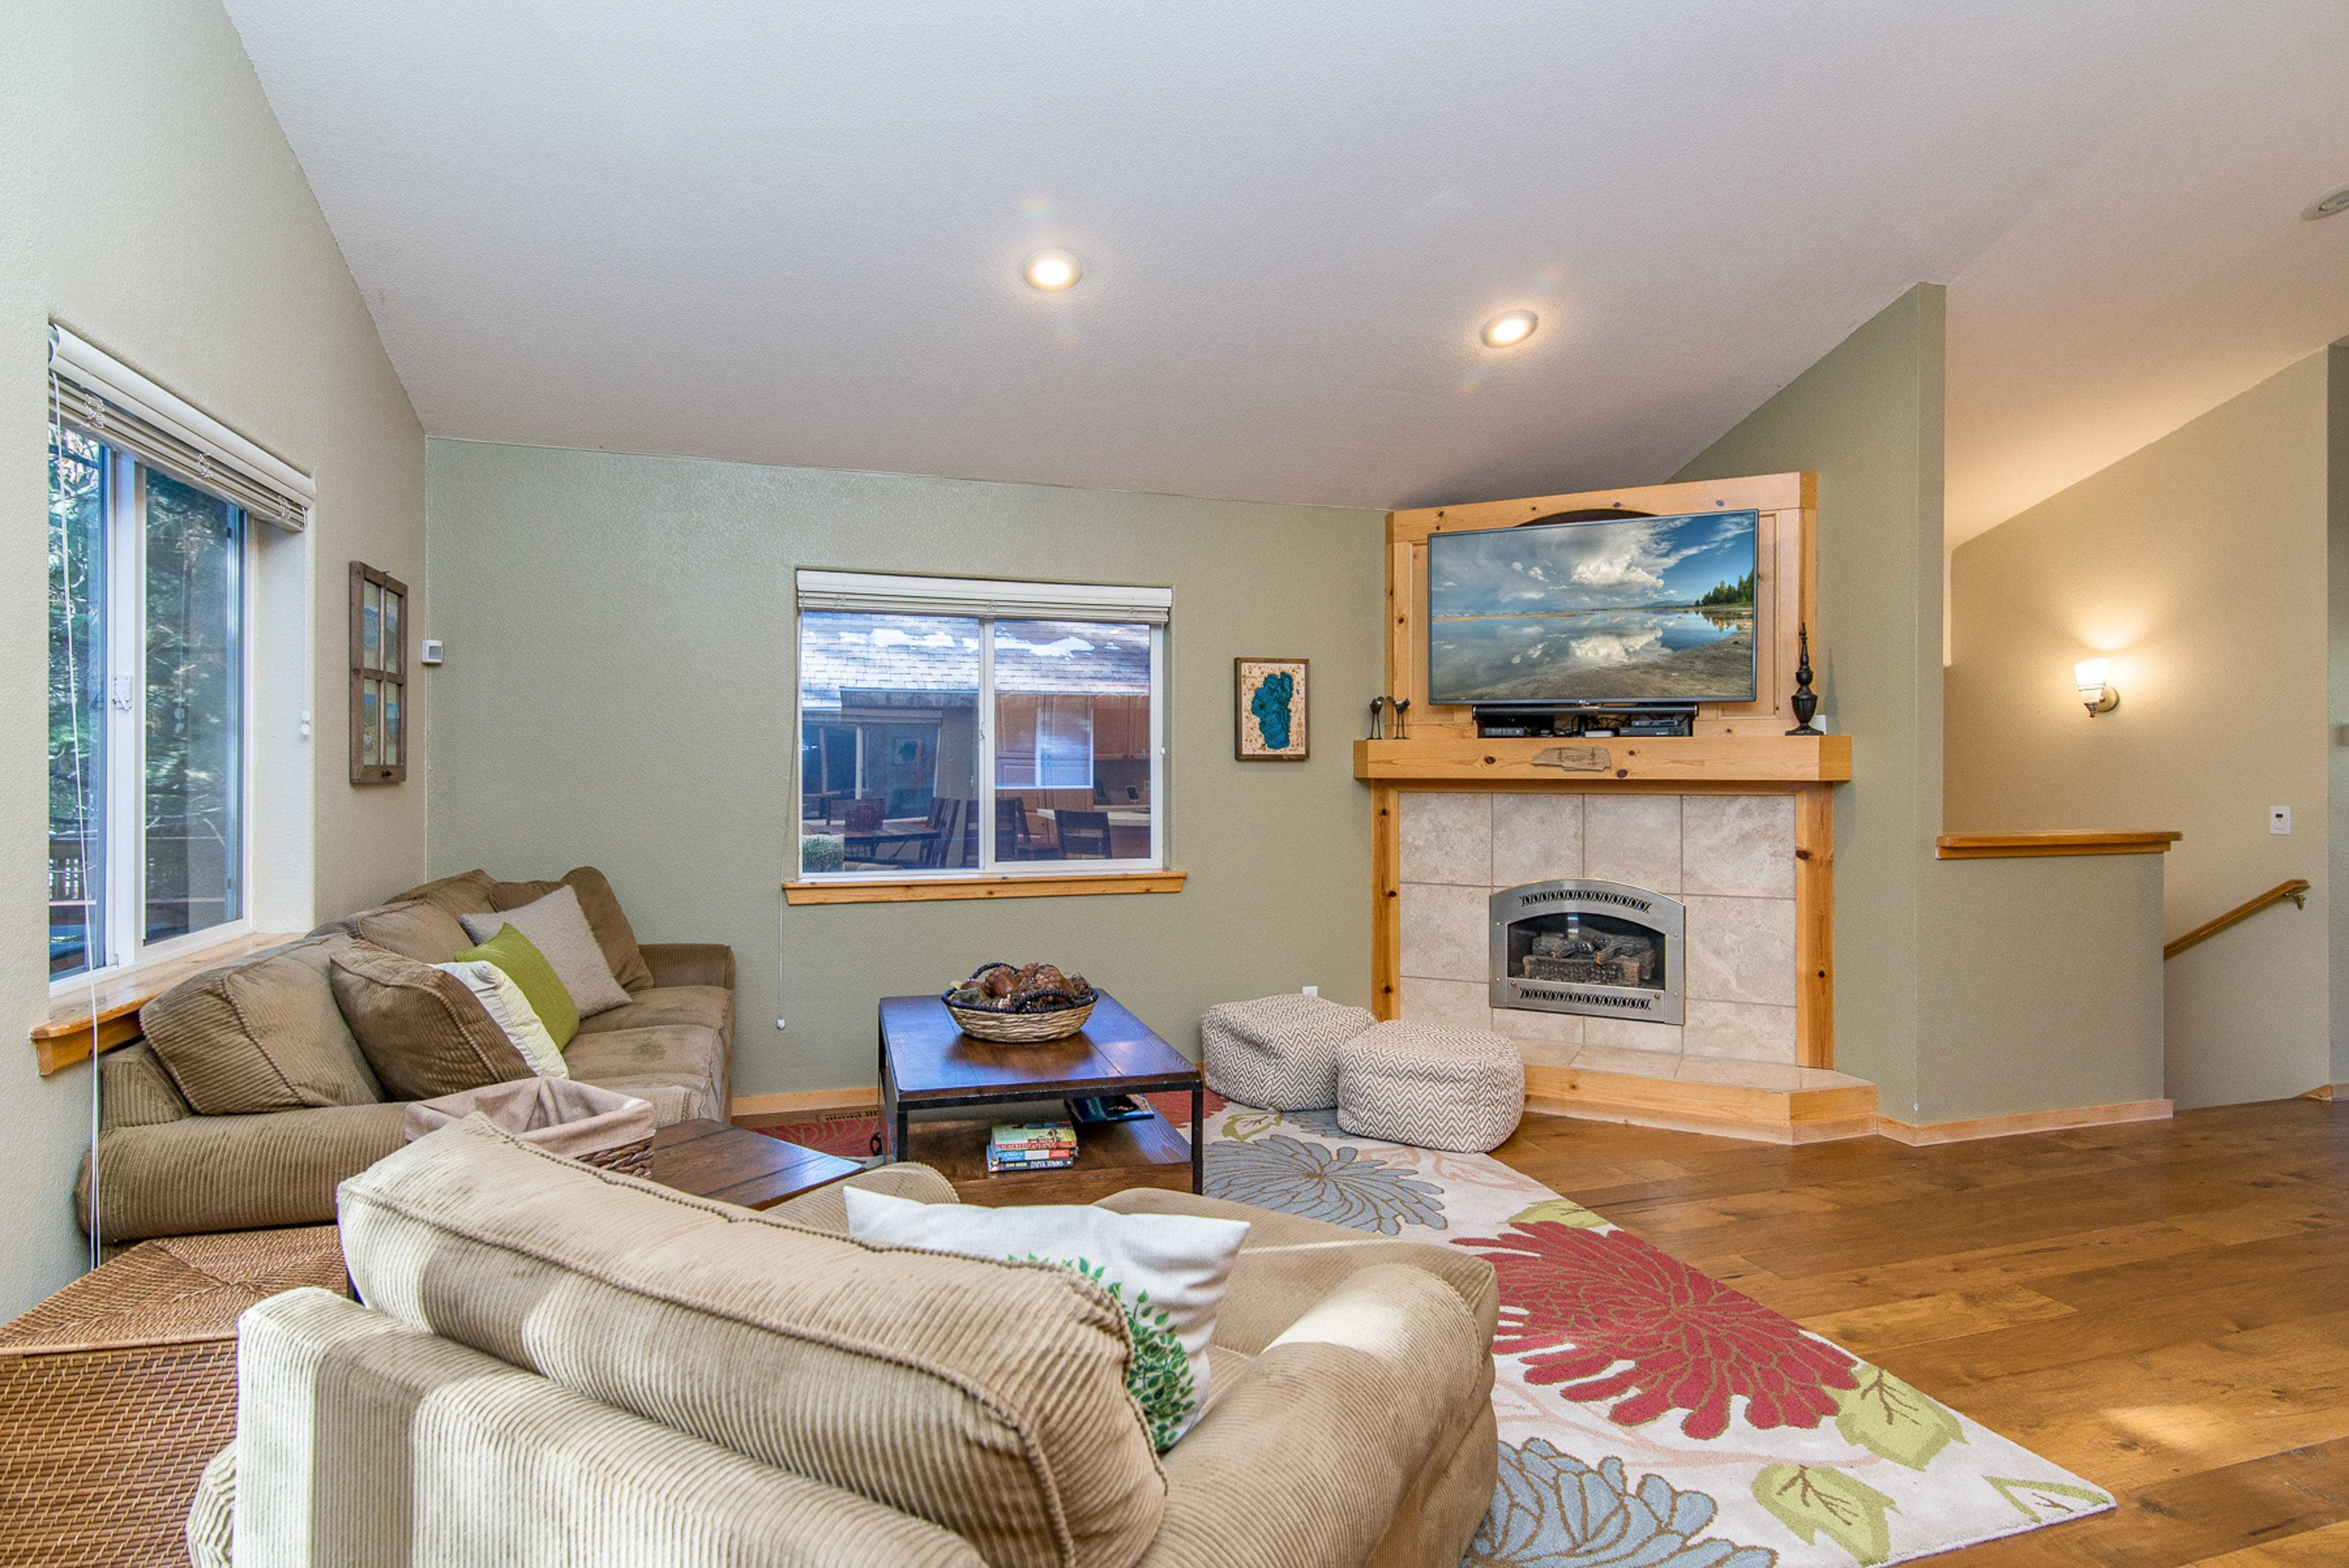 "Cozy up next to the gas fireplace and watch a movie on the 55"" TV in the living room."